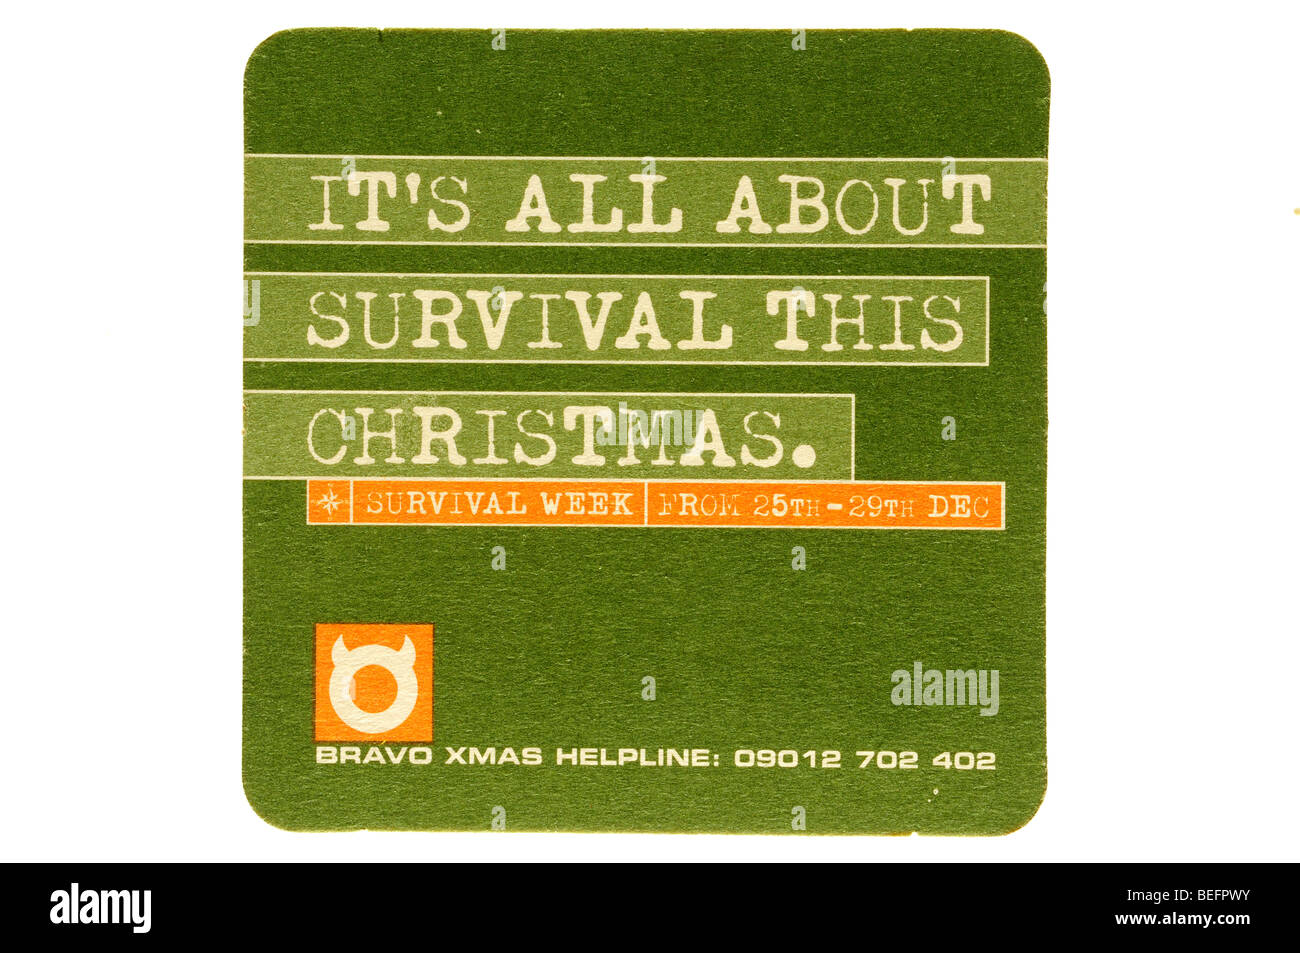 it's all about survival this christmass survival week from 25th 29th dec bravo xmas helpline 09012 702 402 - Stock Image